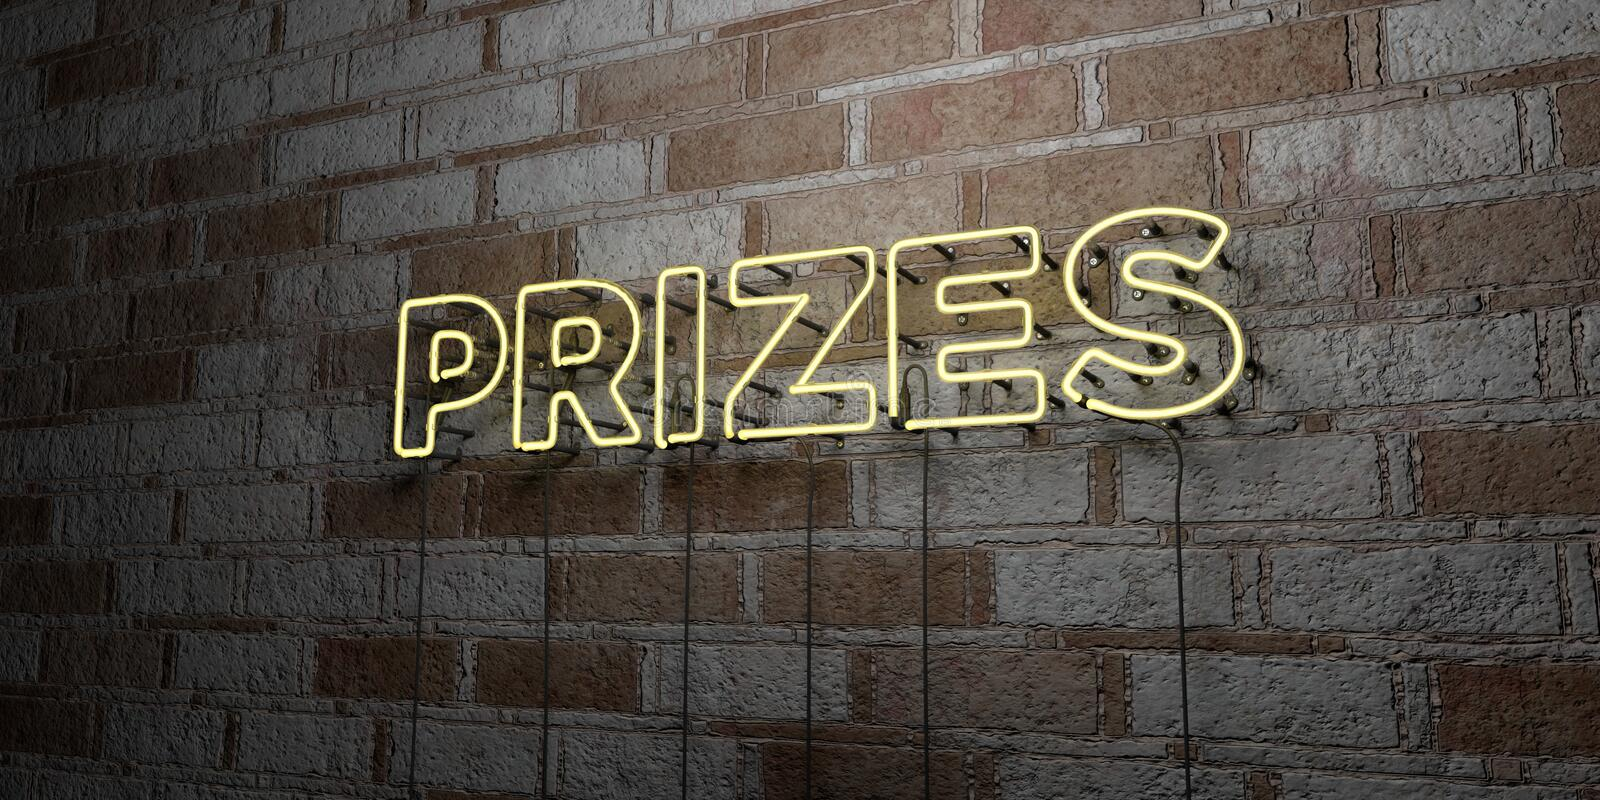 PRIZES - Glowing Neon Sign on stonework wall - 3D rendered royalty free stock illustration vector illustration